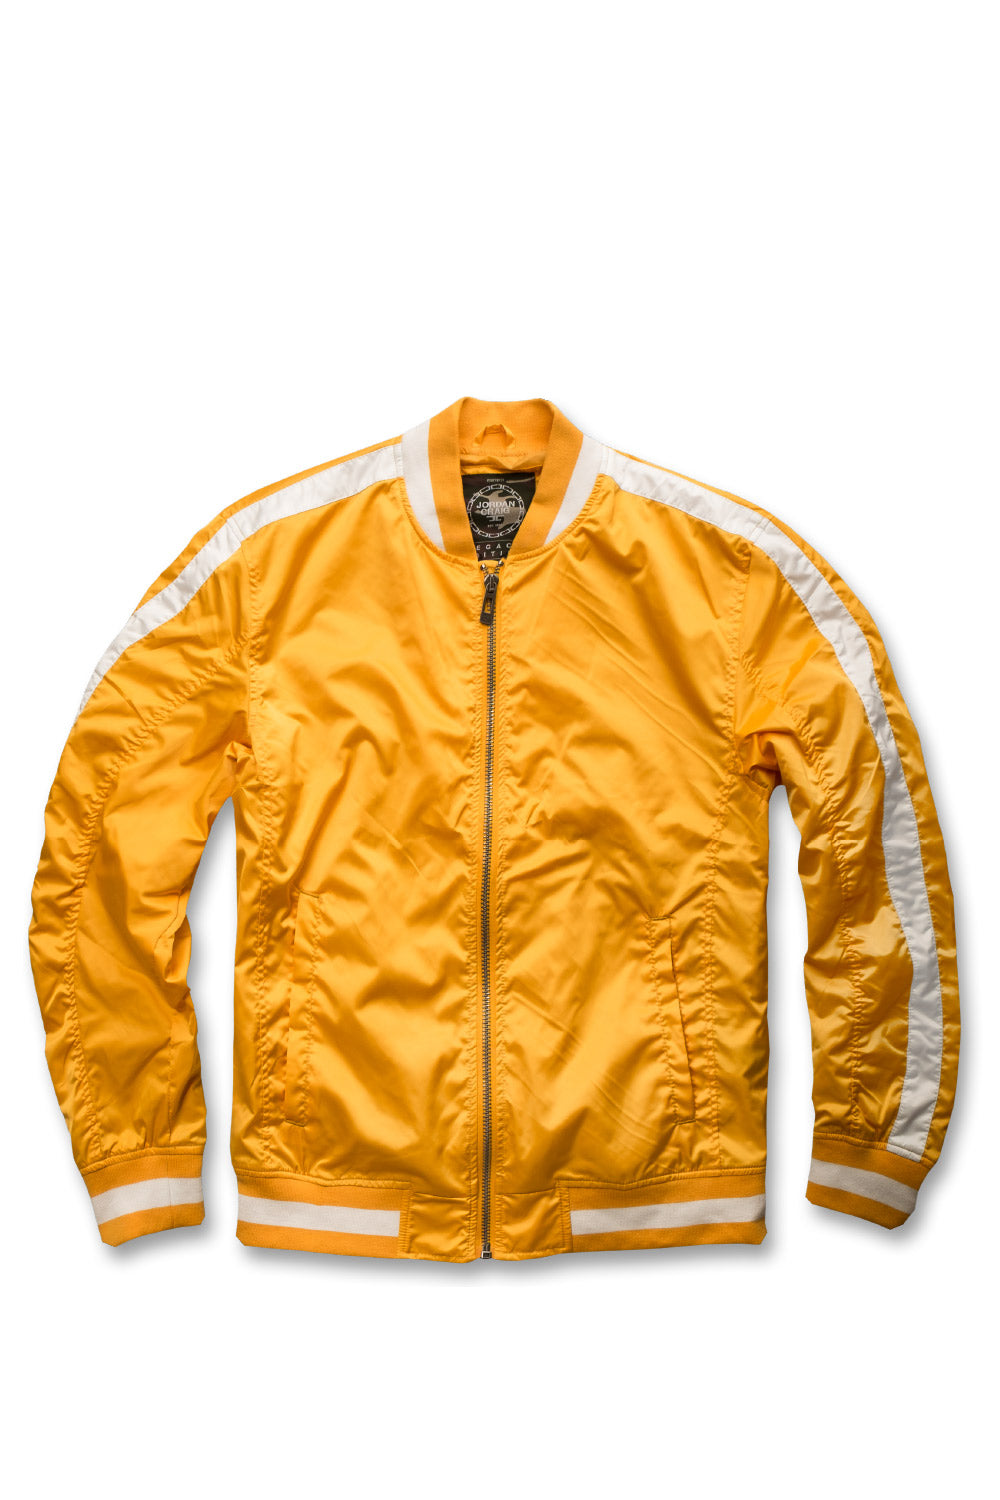 Jordan Craig - Contrast Stripe Bomber Jacket (Laser Orange)